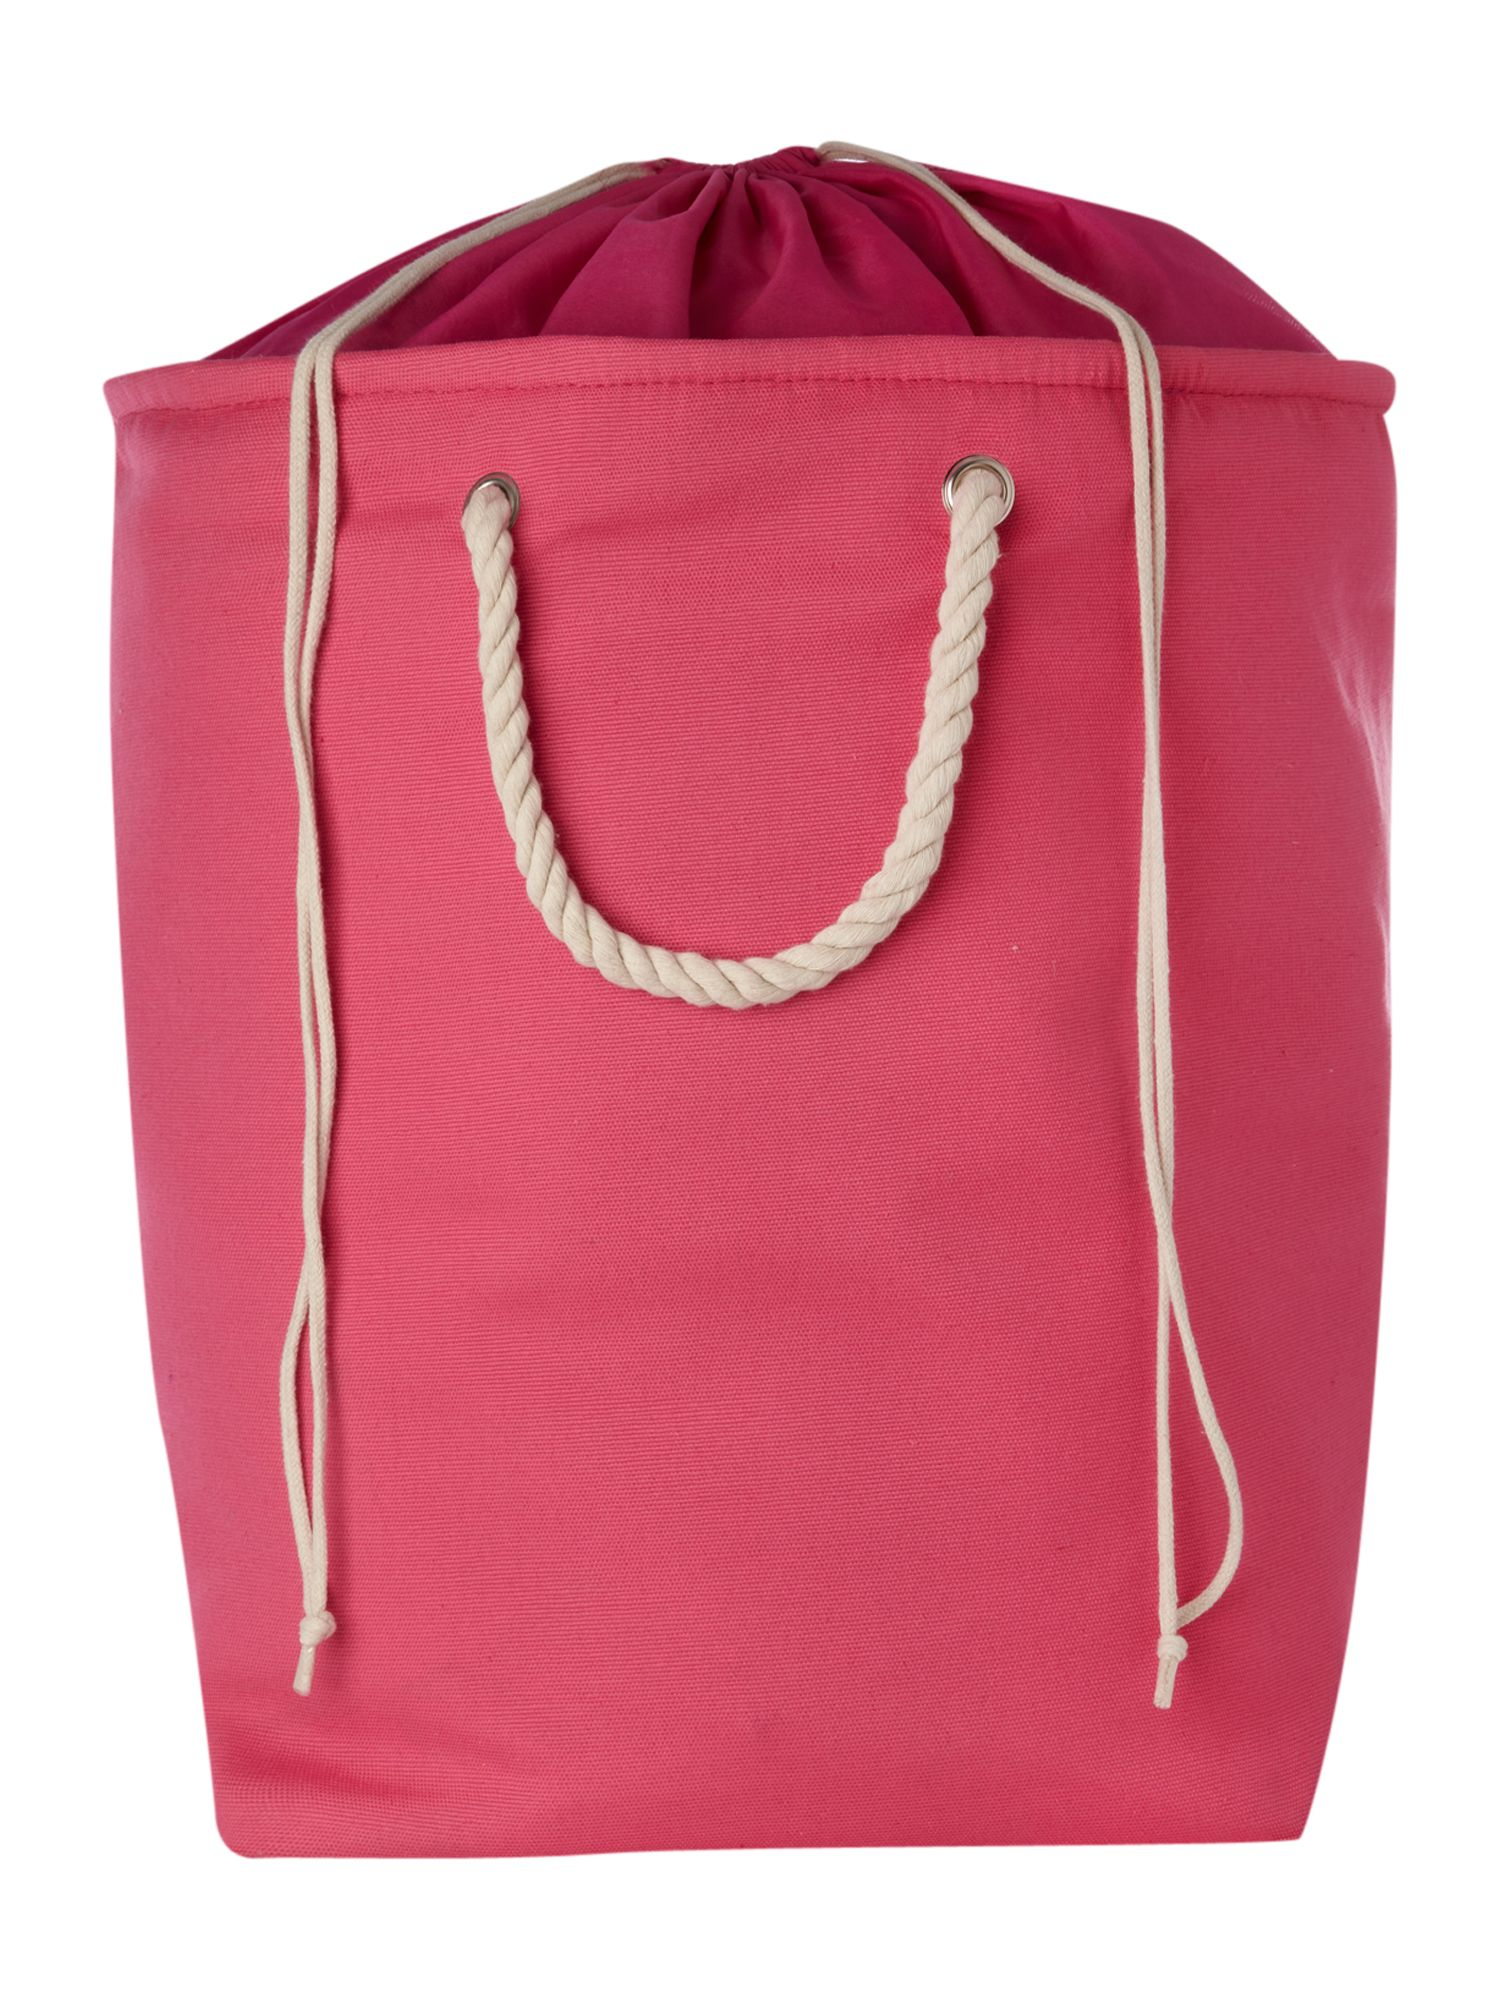 Pink canvas laundry bag